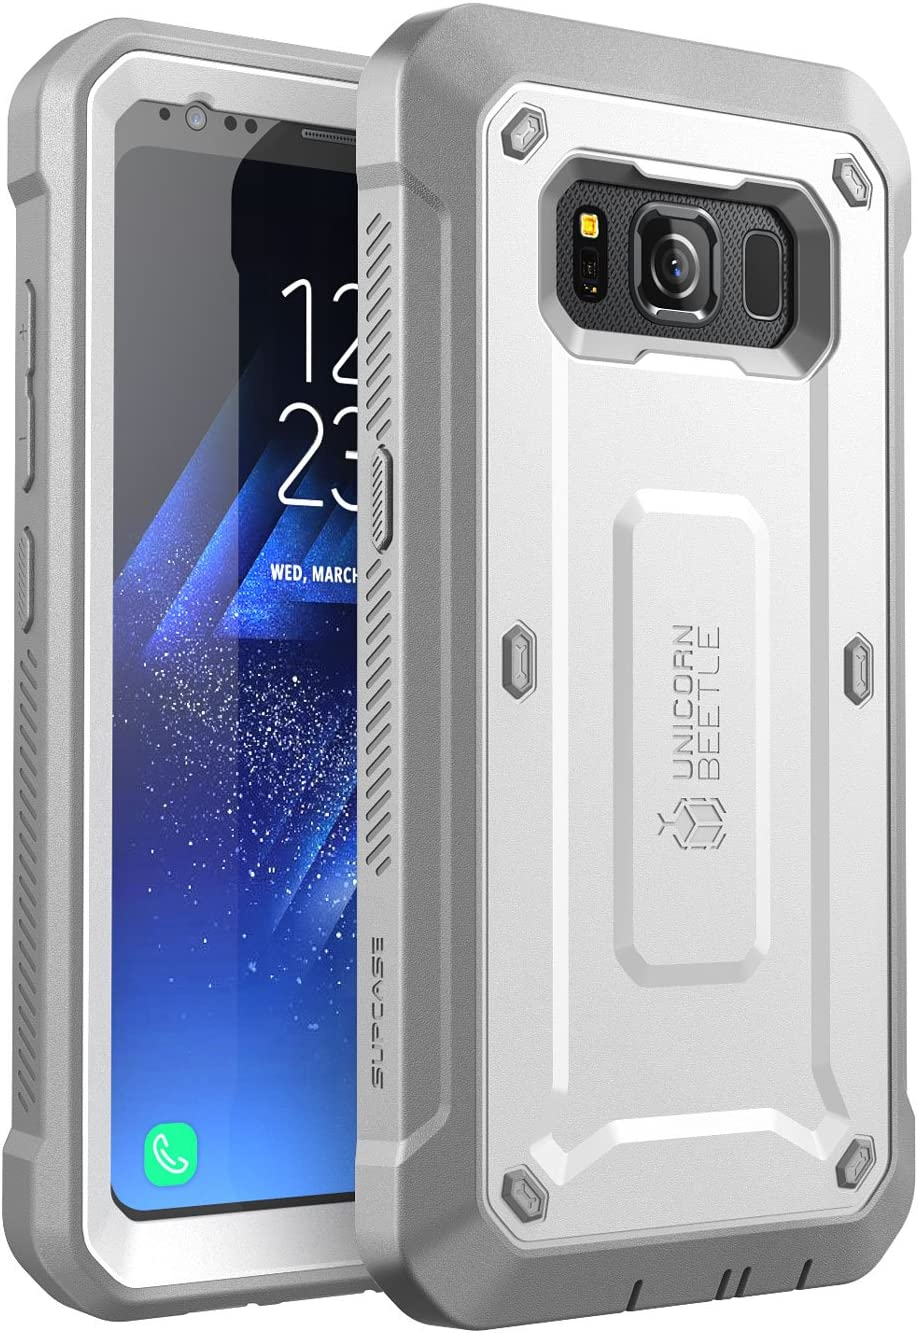 Full-Body Hybrid Case with Screen Protector Black SM-G870A SUPCASE Unicorn Beetle PRO Series Case for Galaxy S5 Active